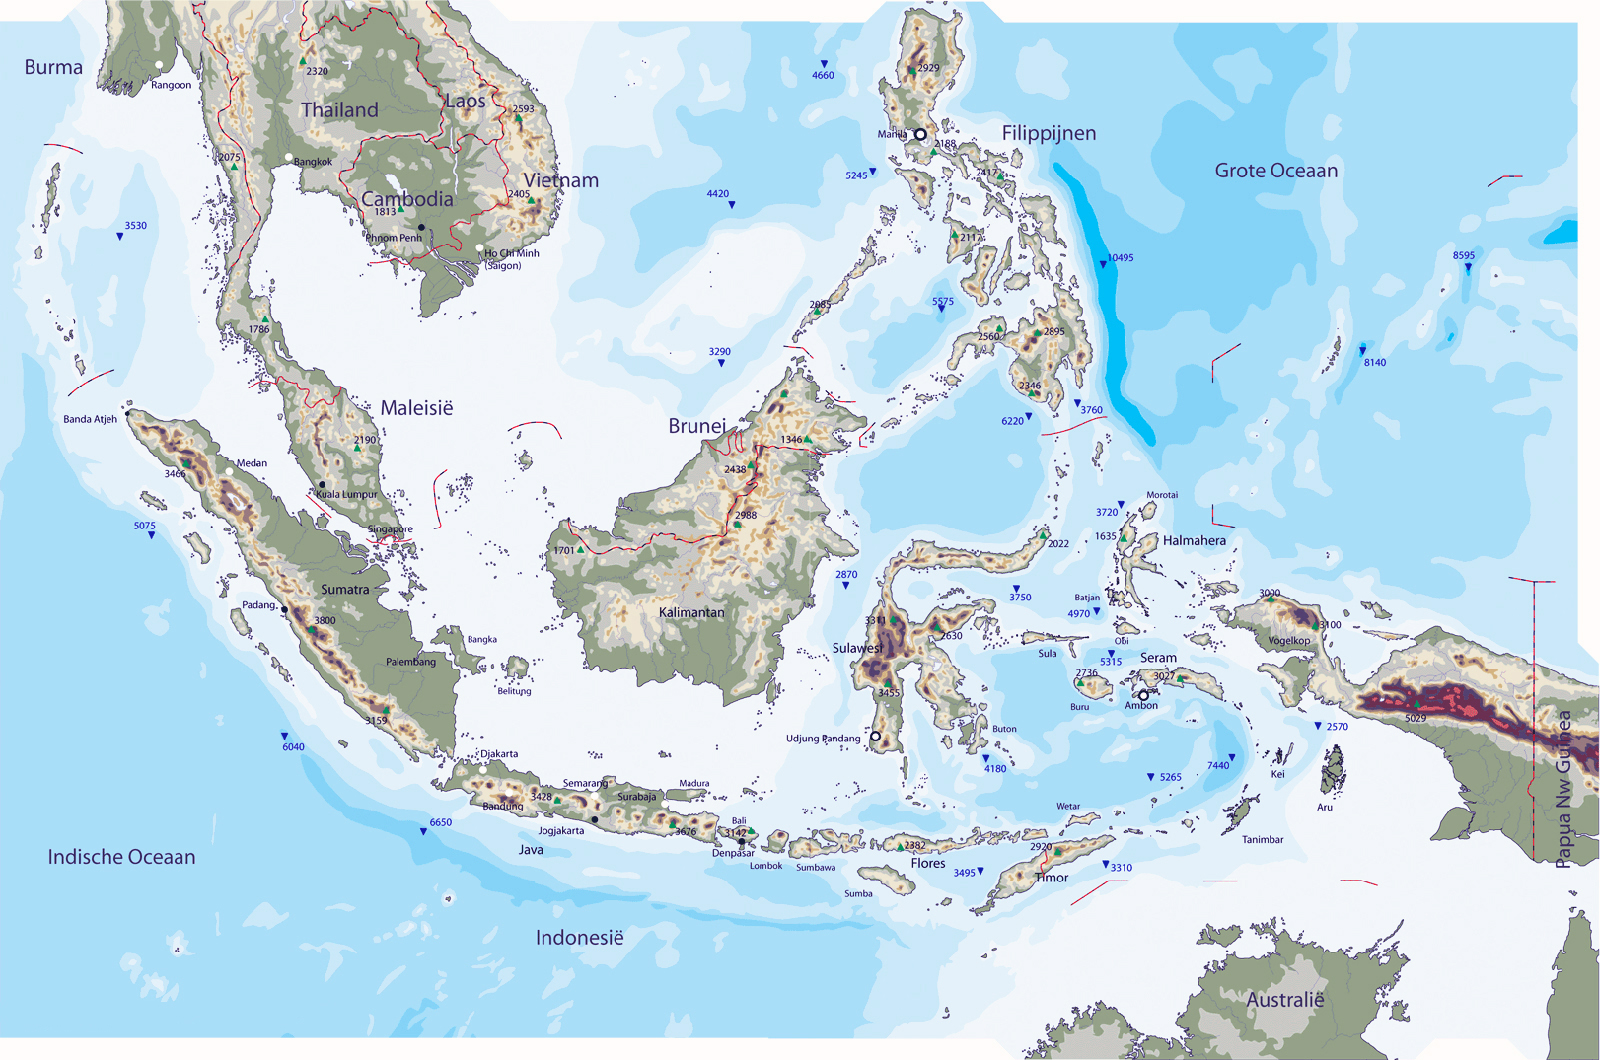 Large detailed physical map of Indonesia. Indonesia large detailed on china road map, spain road map, eastern australia road map, africa road map, paraguay road map, nigeria road map, malaysia road map, austria road map, u.s. road map, qatar road map, st croix road map, st barts road map, whereis nuuk on a map, india road map, uk england road map, jakarta road map, palau road map, world road map, montserrat road map, sydney road map,